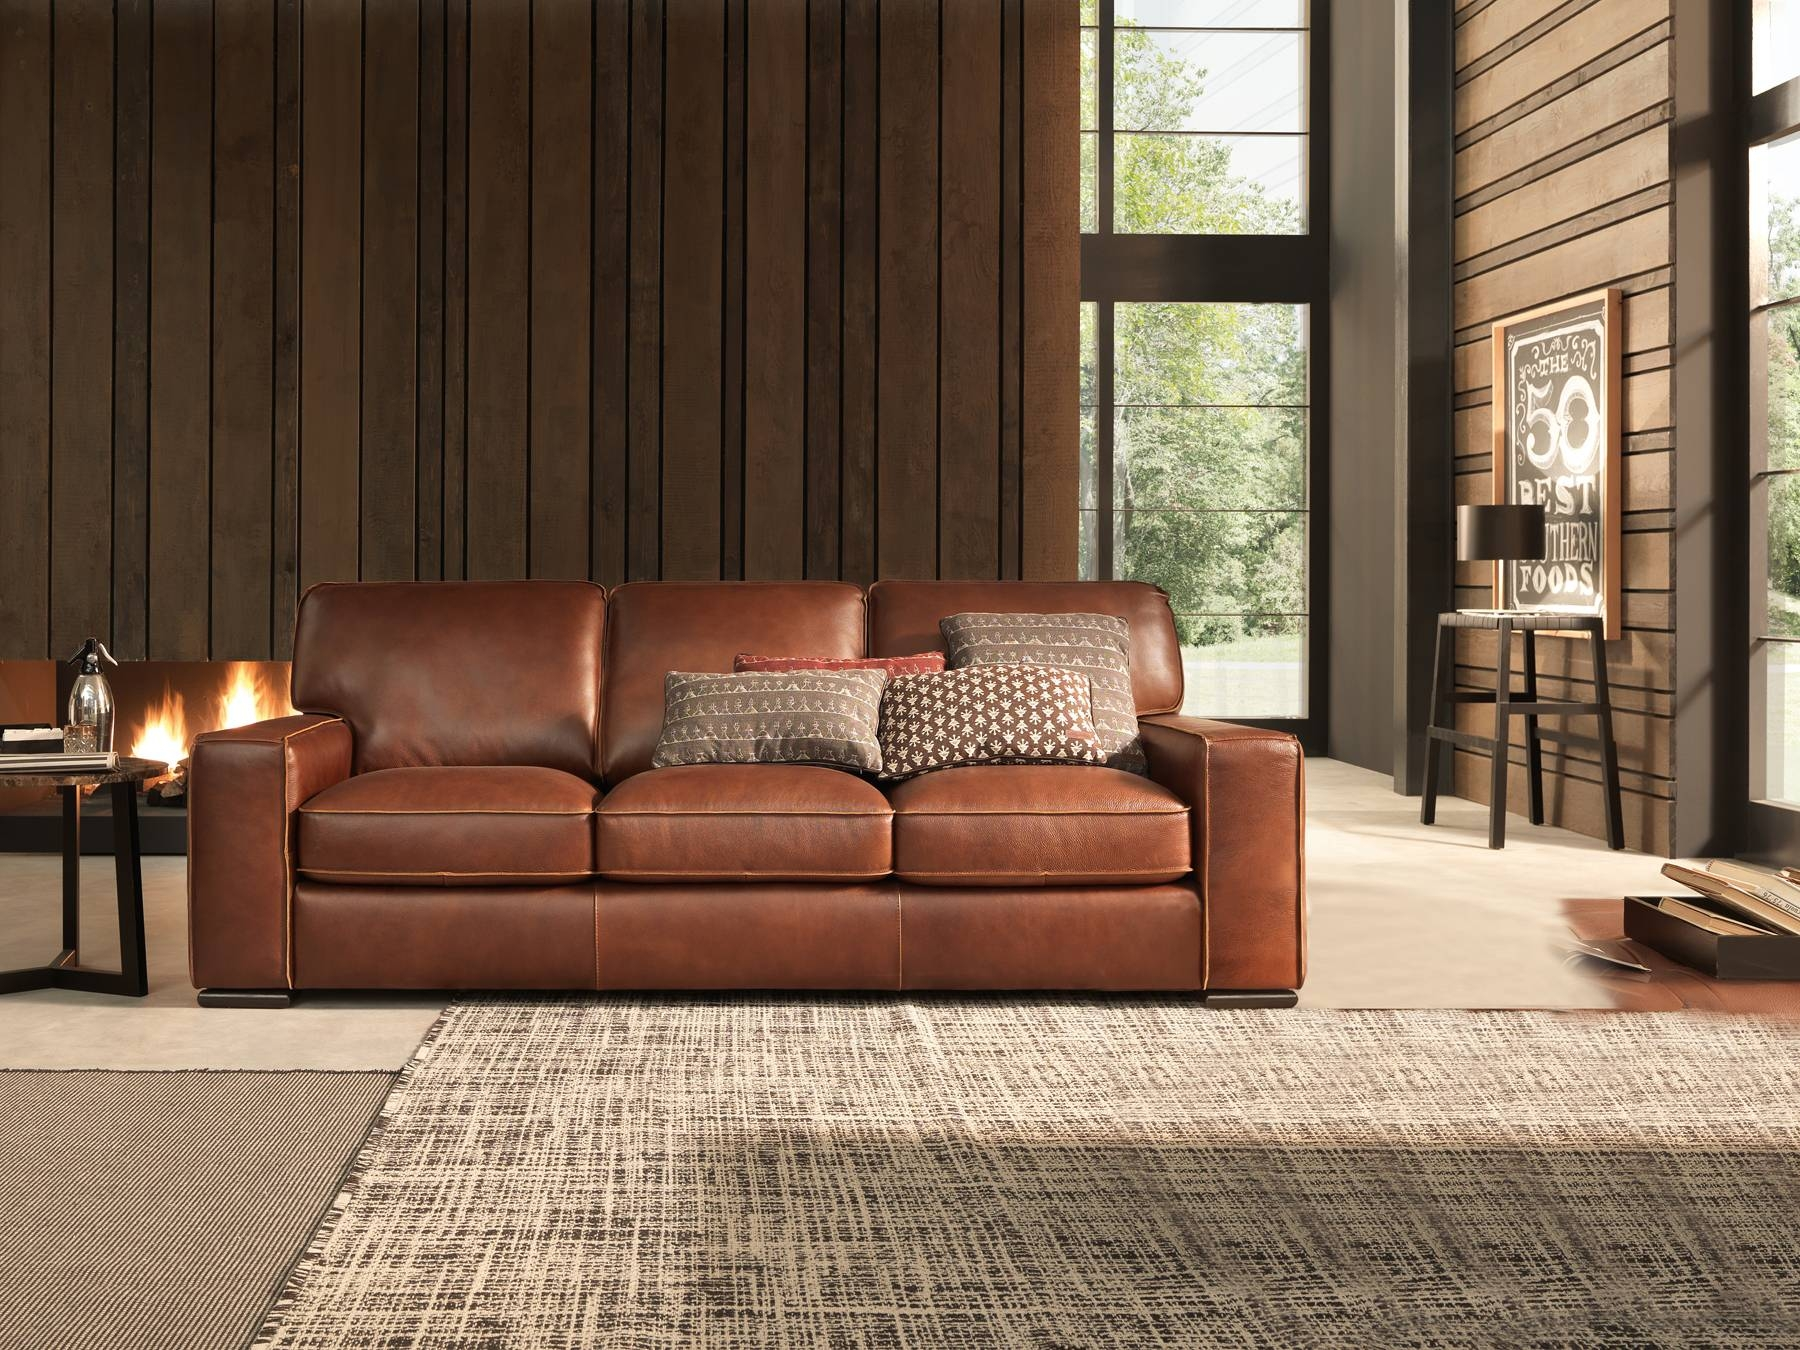 The Best Italian Leather Sofas: The Lap Of Luxury - intended for Italian Leather Sofas (Image 13 of 15)